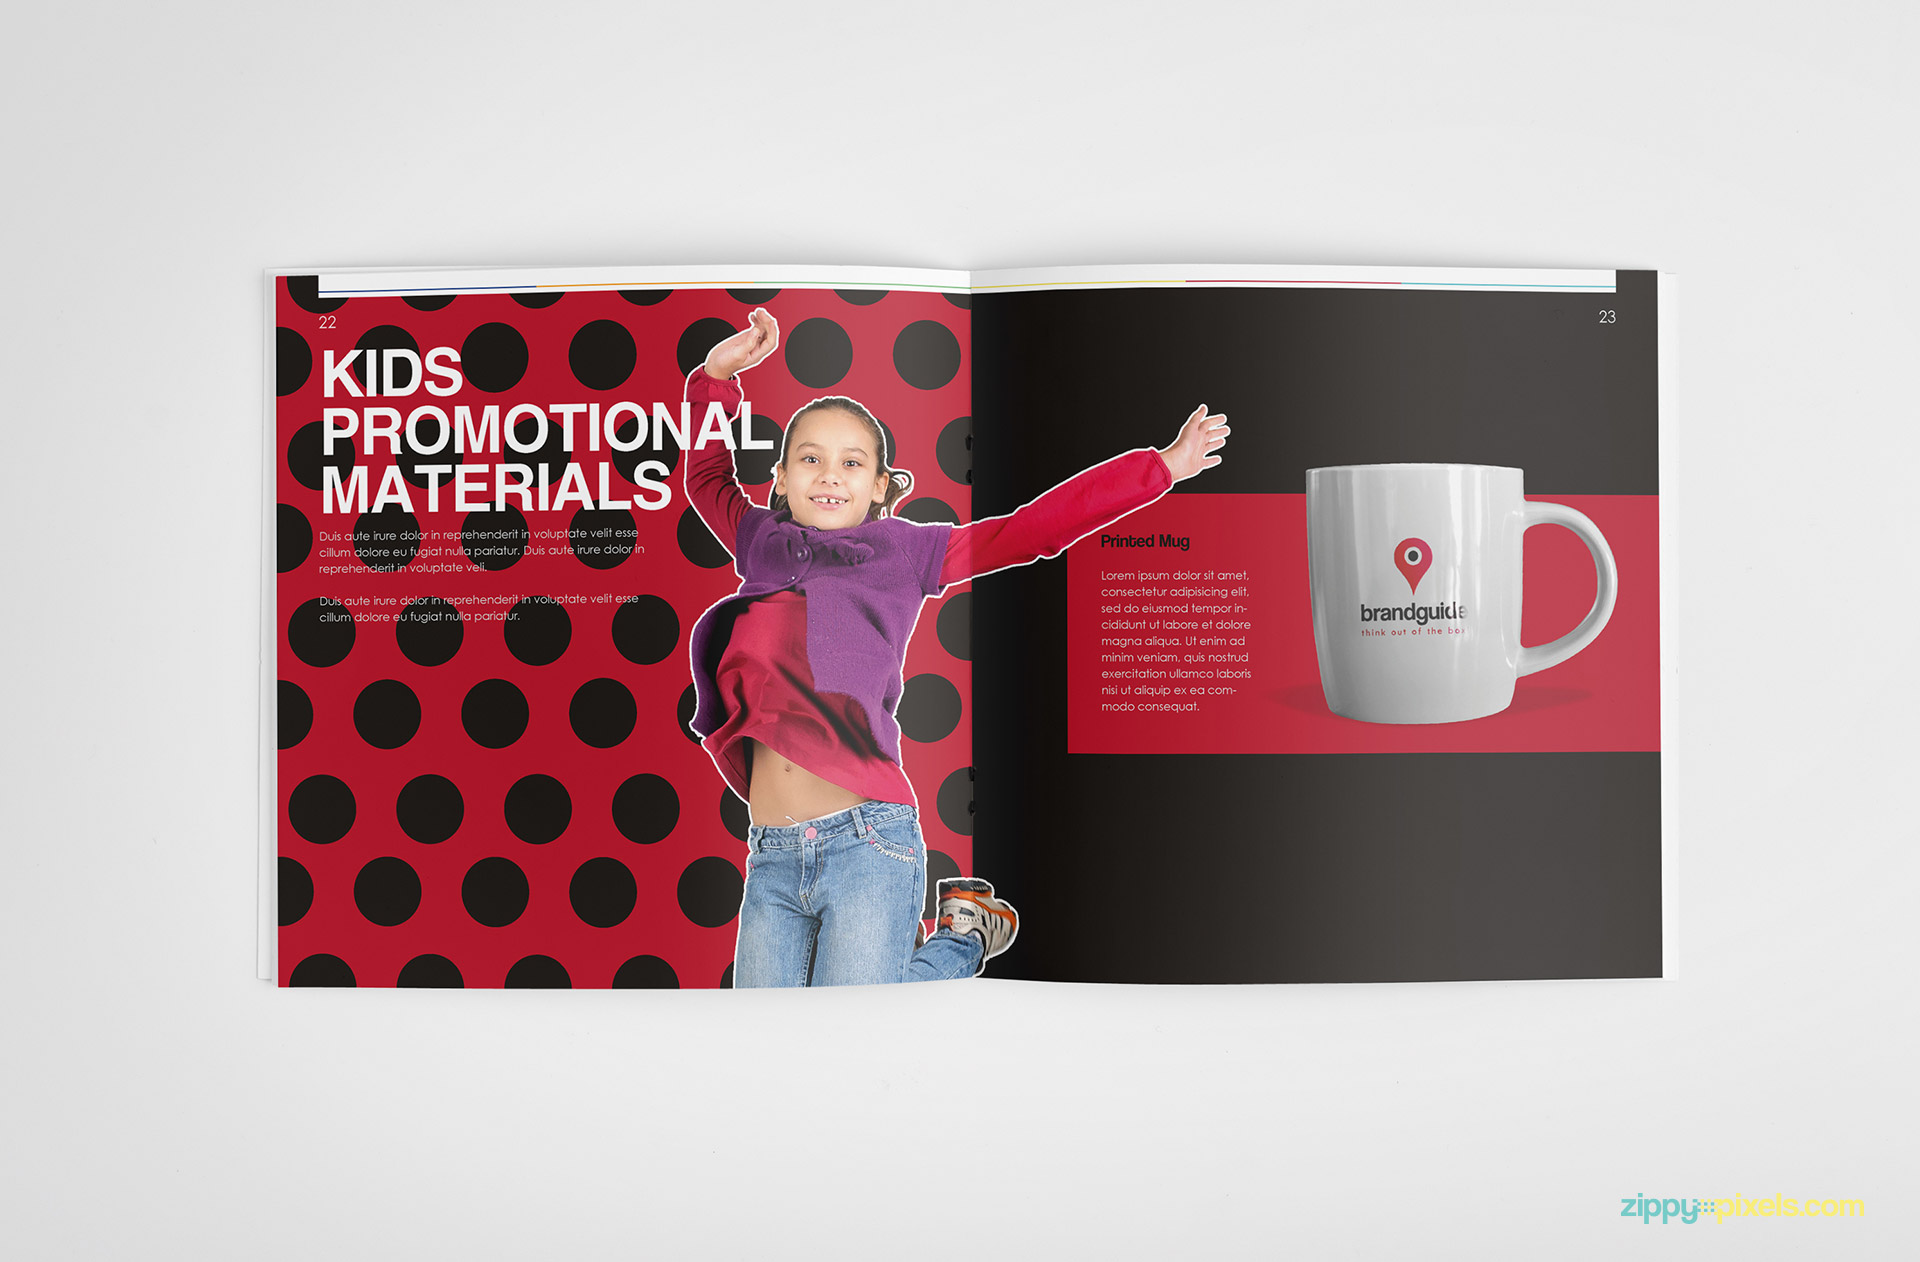 15-brand-book-12-kids-promotional-materials-printed-mug